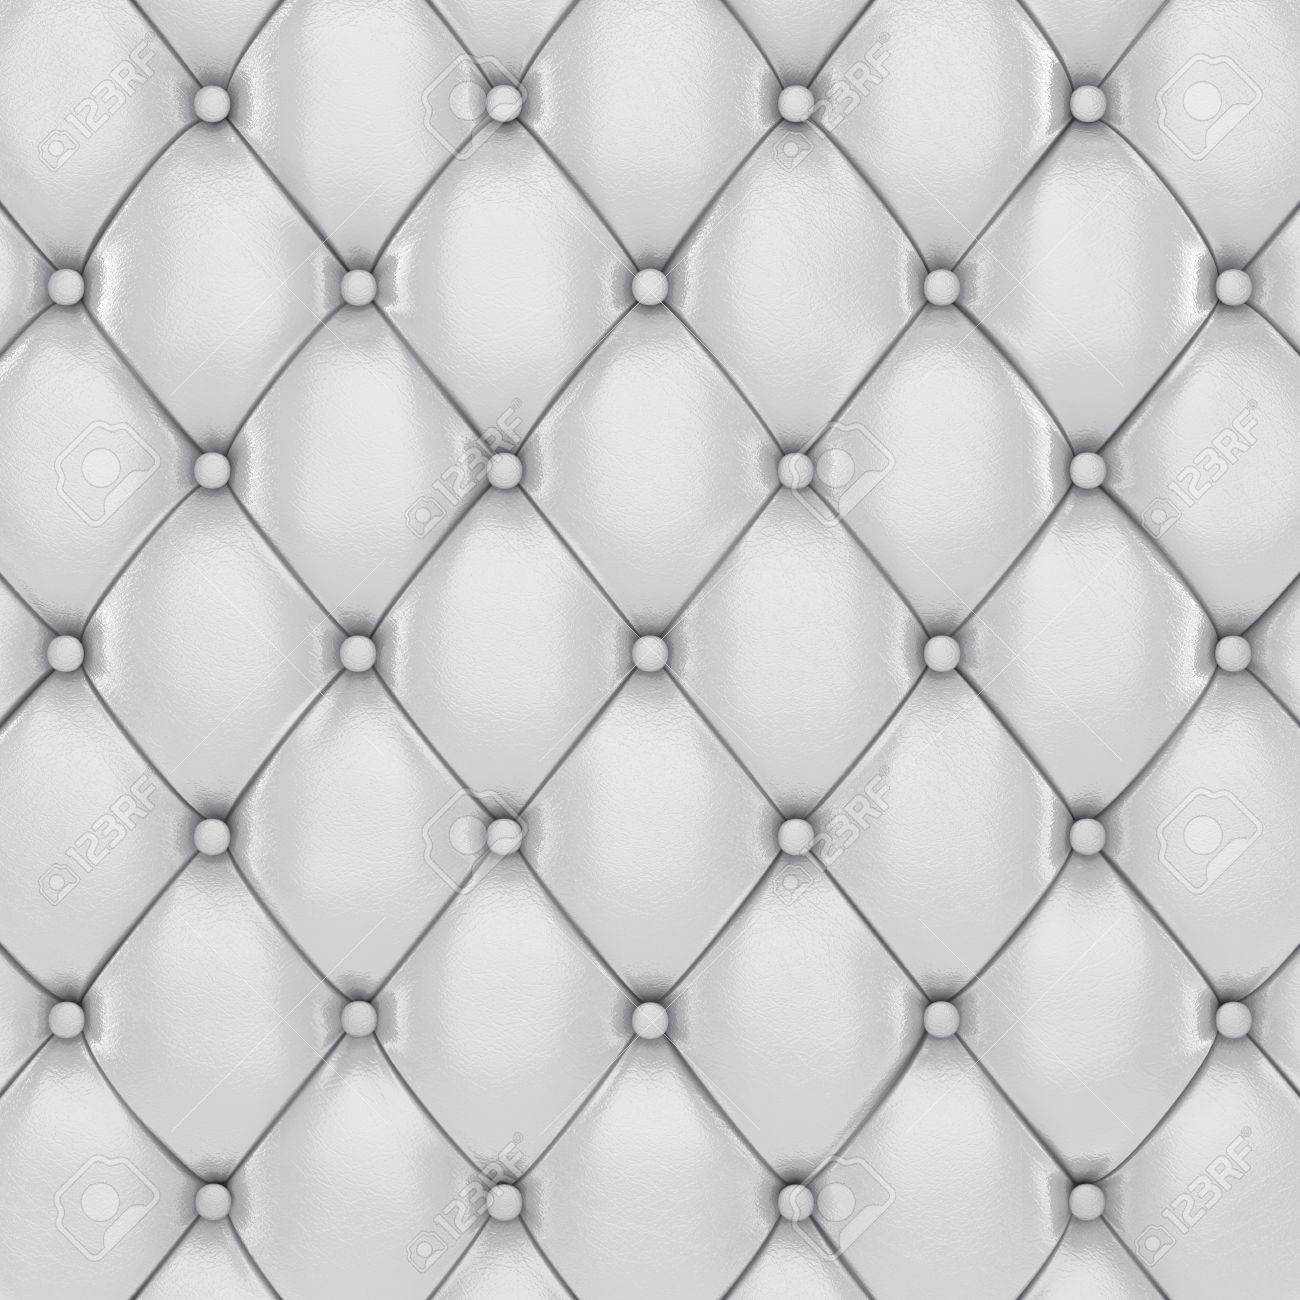 Leather cushion texture - Illustration White Leather Upholstery Pattern 3d Illustration